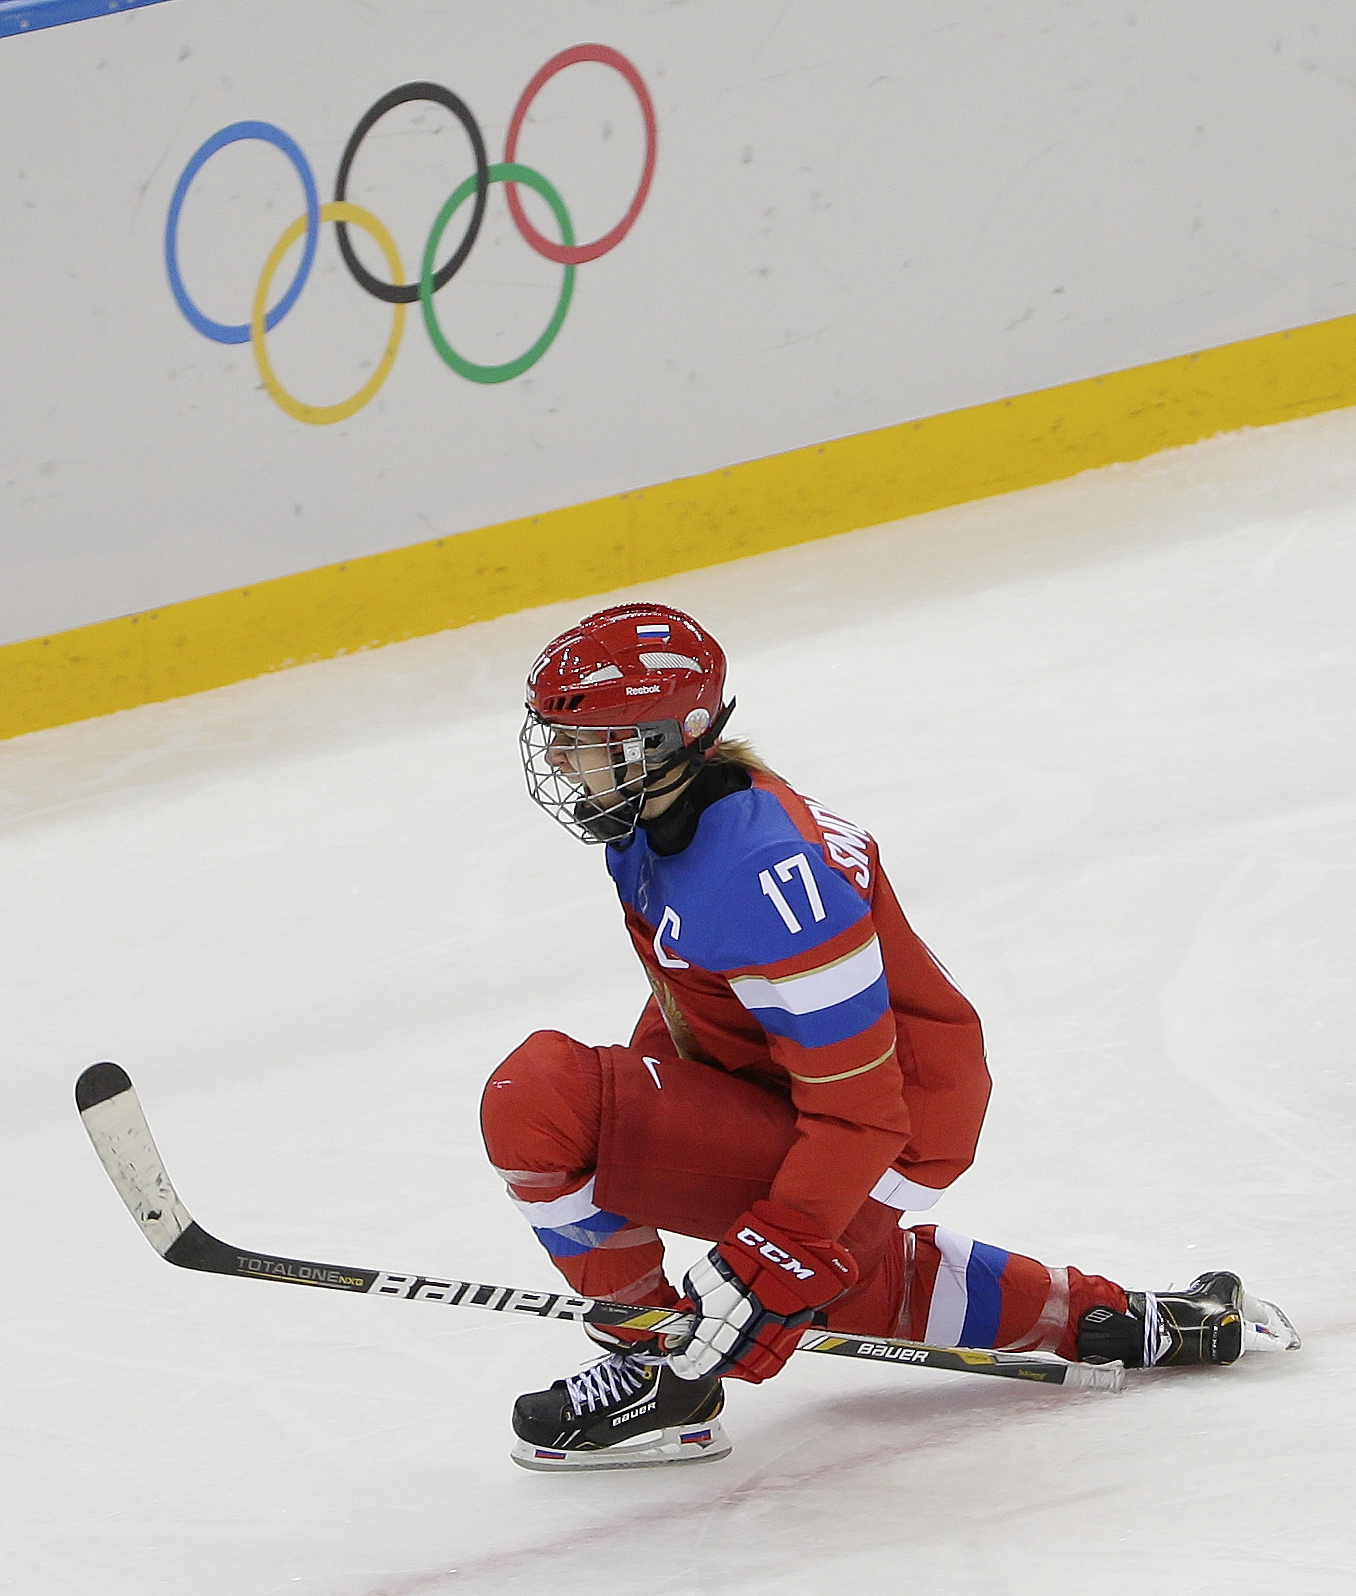 Yekaterina Smolentseva of Russia celebrates her goal against Germany during the third period of the 2014 Winter Olympics women's ice hockey game at Shayba Arena, Sunday, Feb. 9, 2014, in Sochi, Russia. (AP Photo/Matt Slocum)